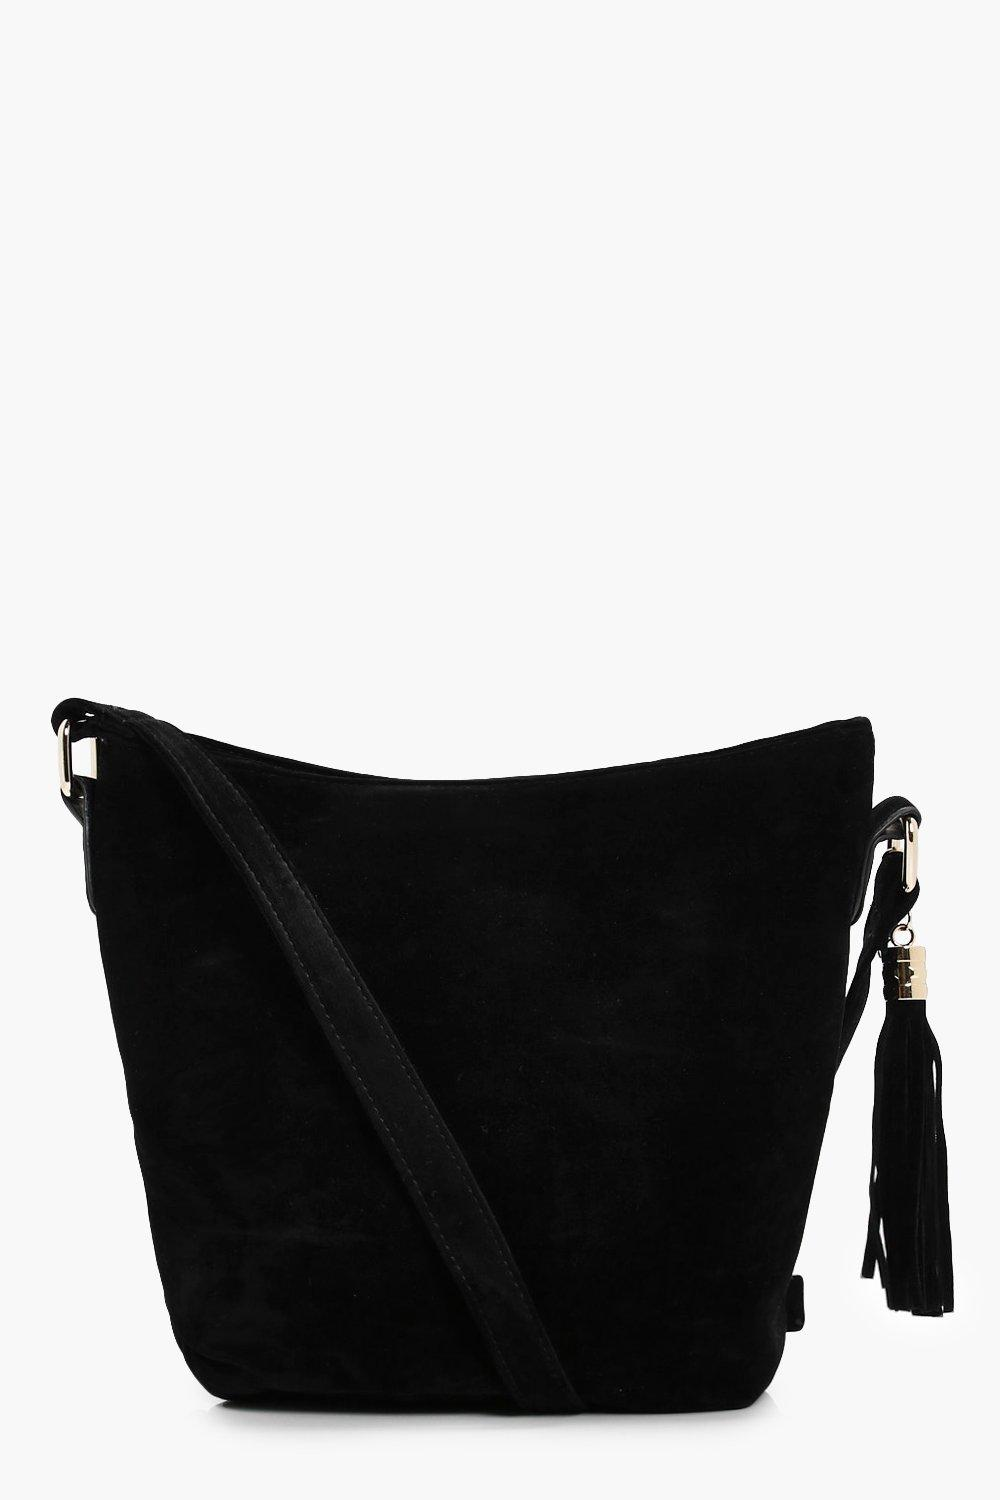 Suedette Bucket Cross Body Bag - black - Laura Sue